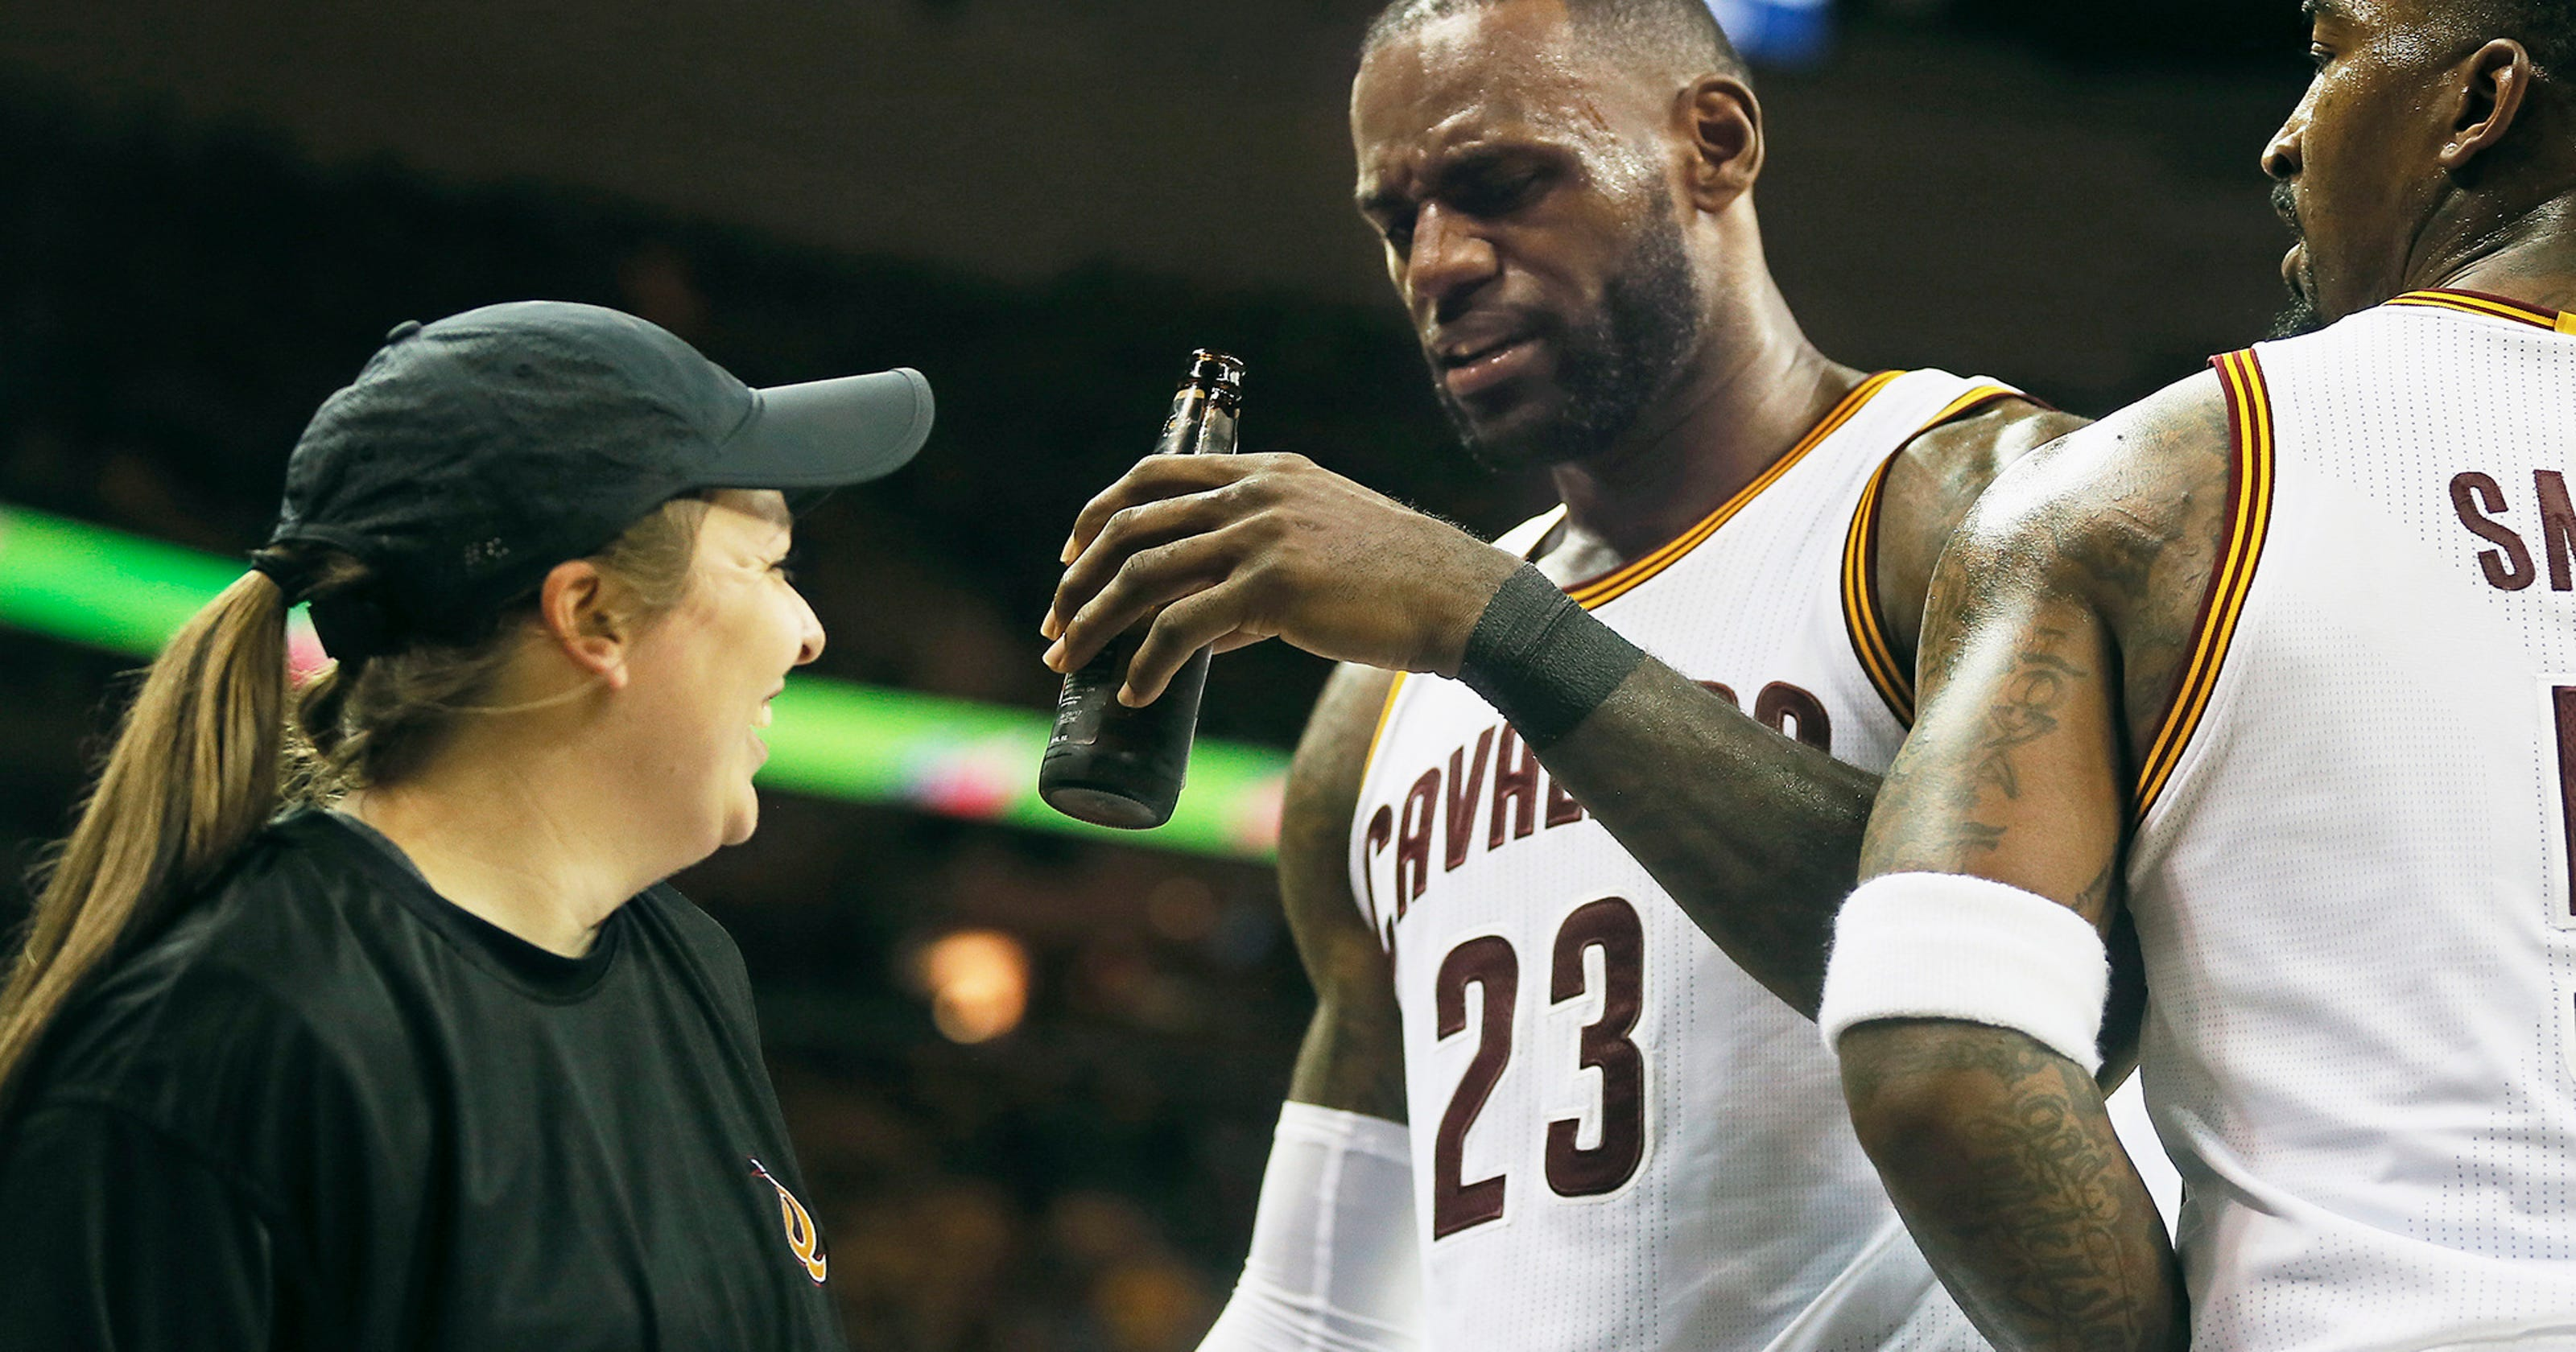 d035651aa07 LeBron James to pay teammate s  6K fine for Game 1 ejection